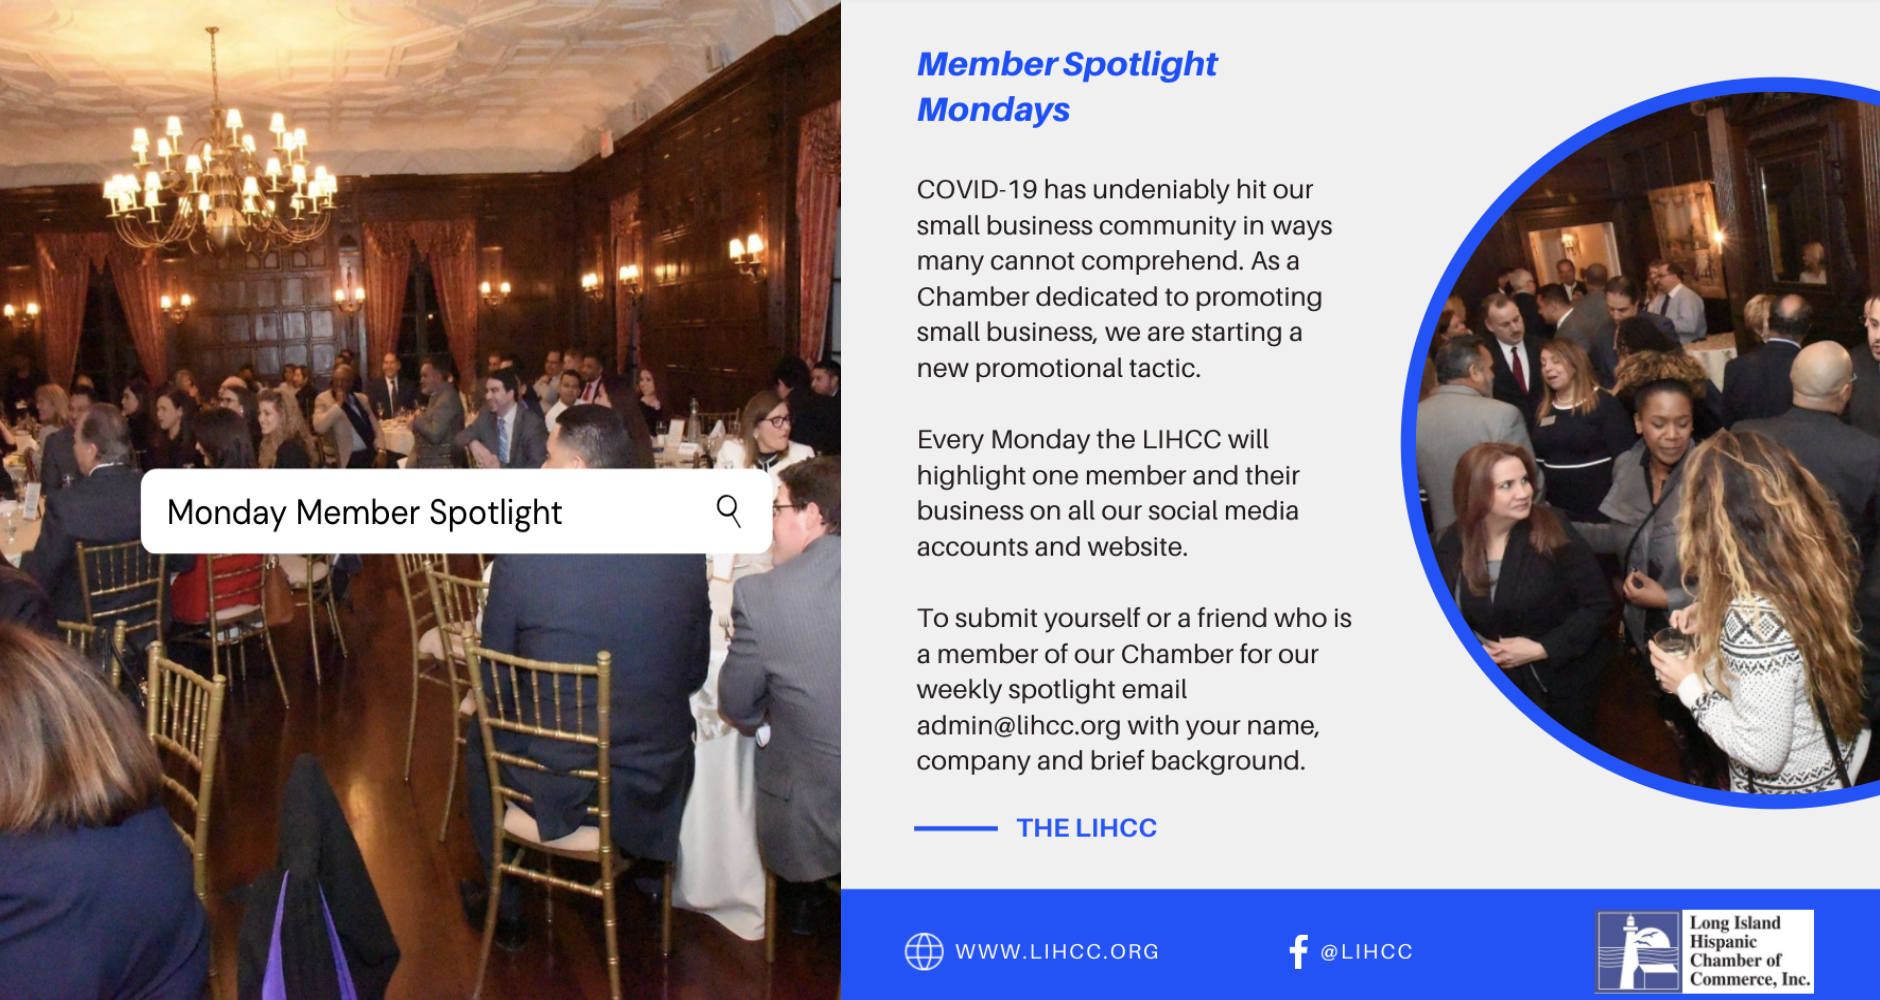 COVID-19 has undeniably hit our small business community in ways many cannot comprehend. As a Chamber dedicated to promoting small business, we are starting a new promotional tactic. Every Monday the LIHCC will highlight one member and their business on all our social media accounts and website. To submit yourself or a friend who is a member of our Chamber for our weekly spotlight email admin@lihcc.org with your name, company and brief background.